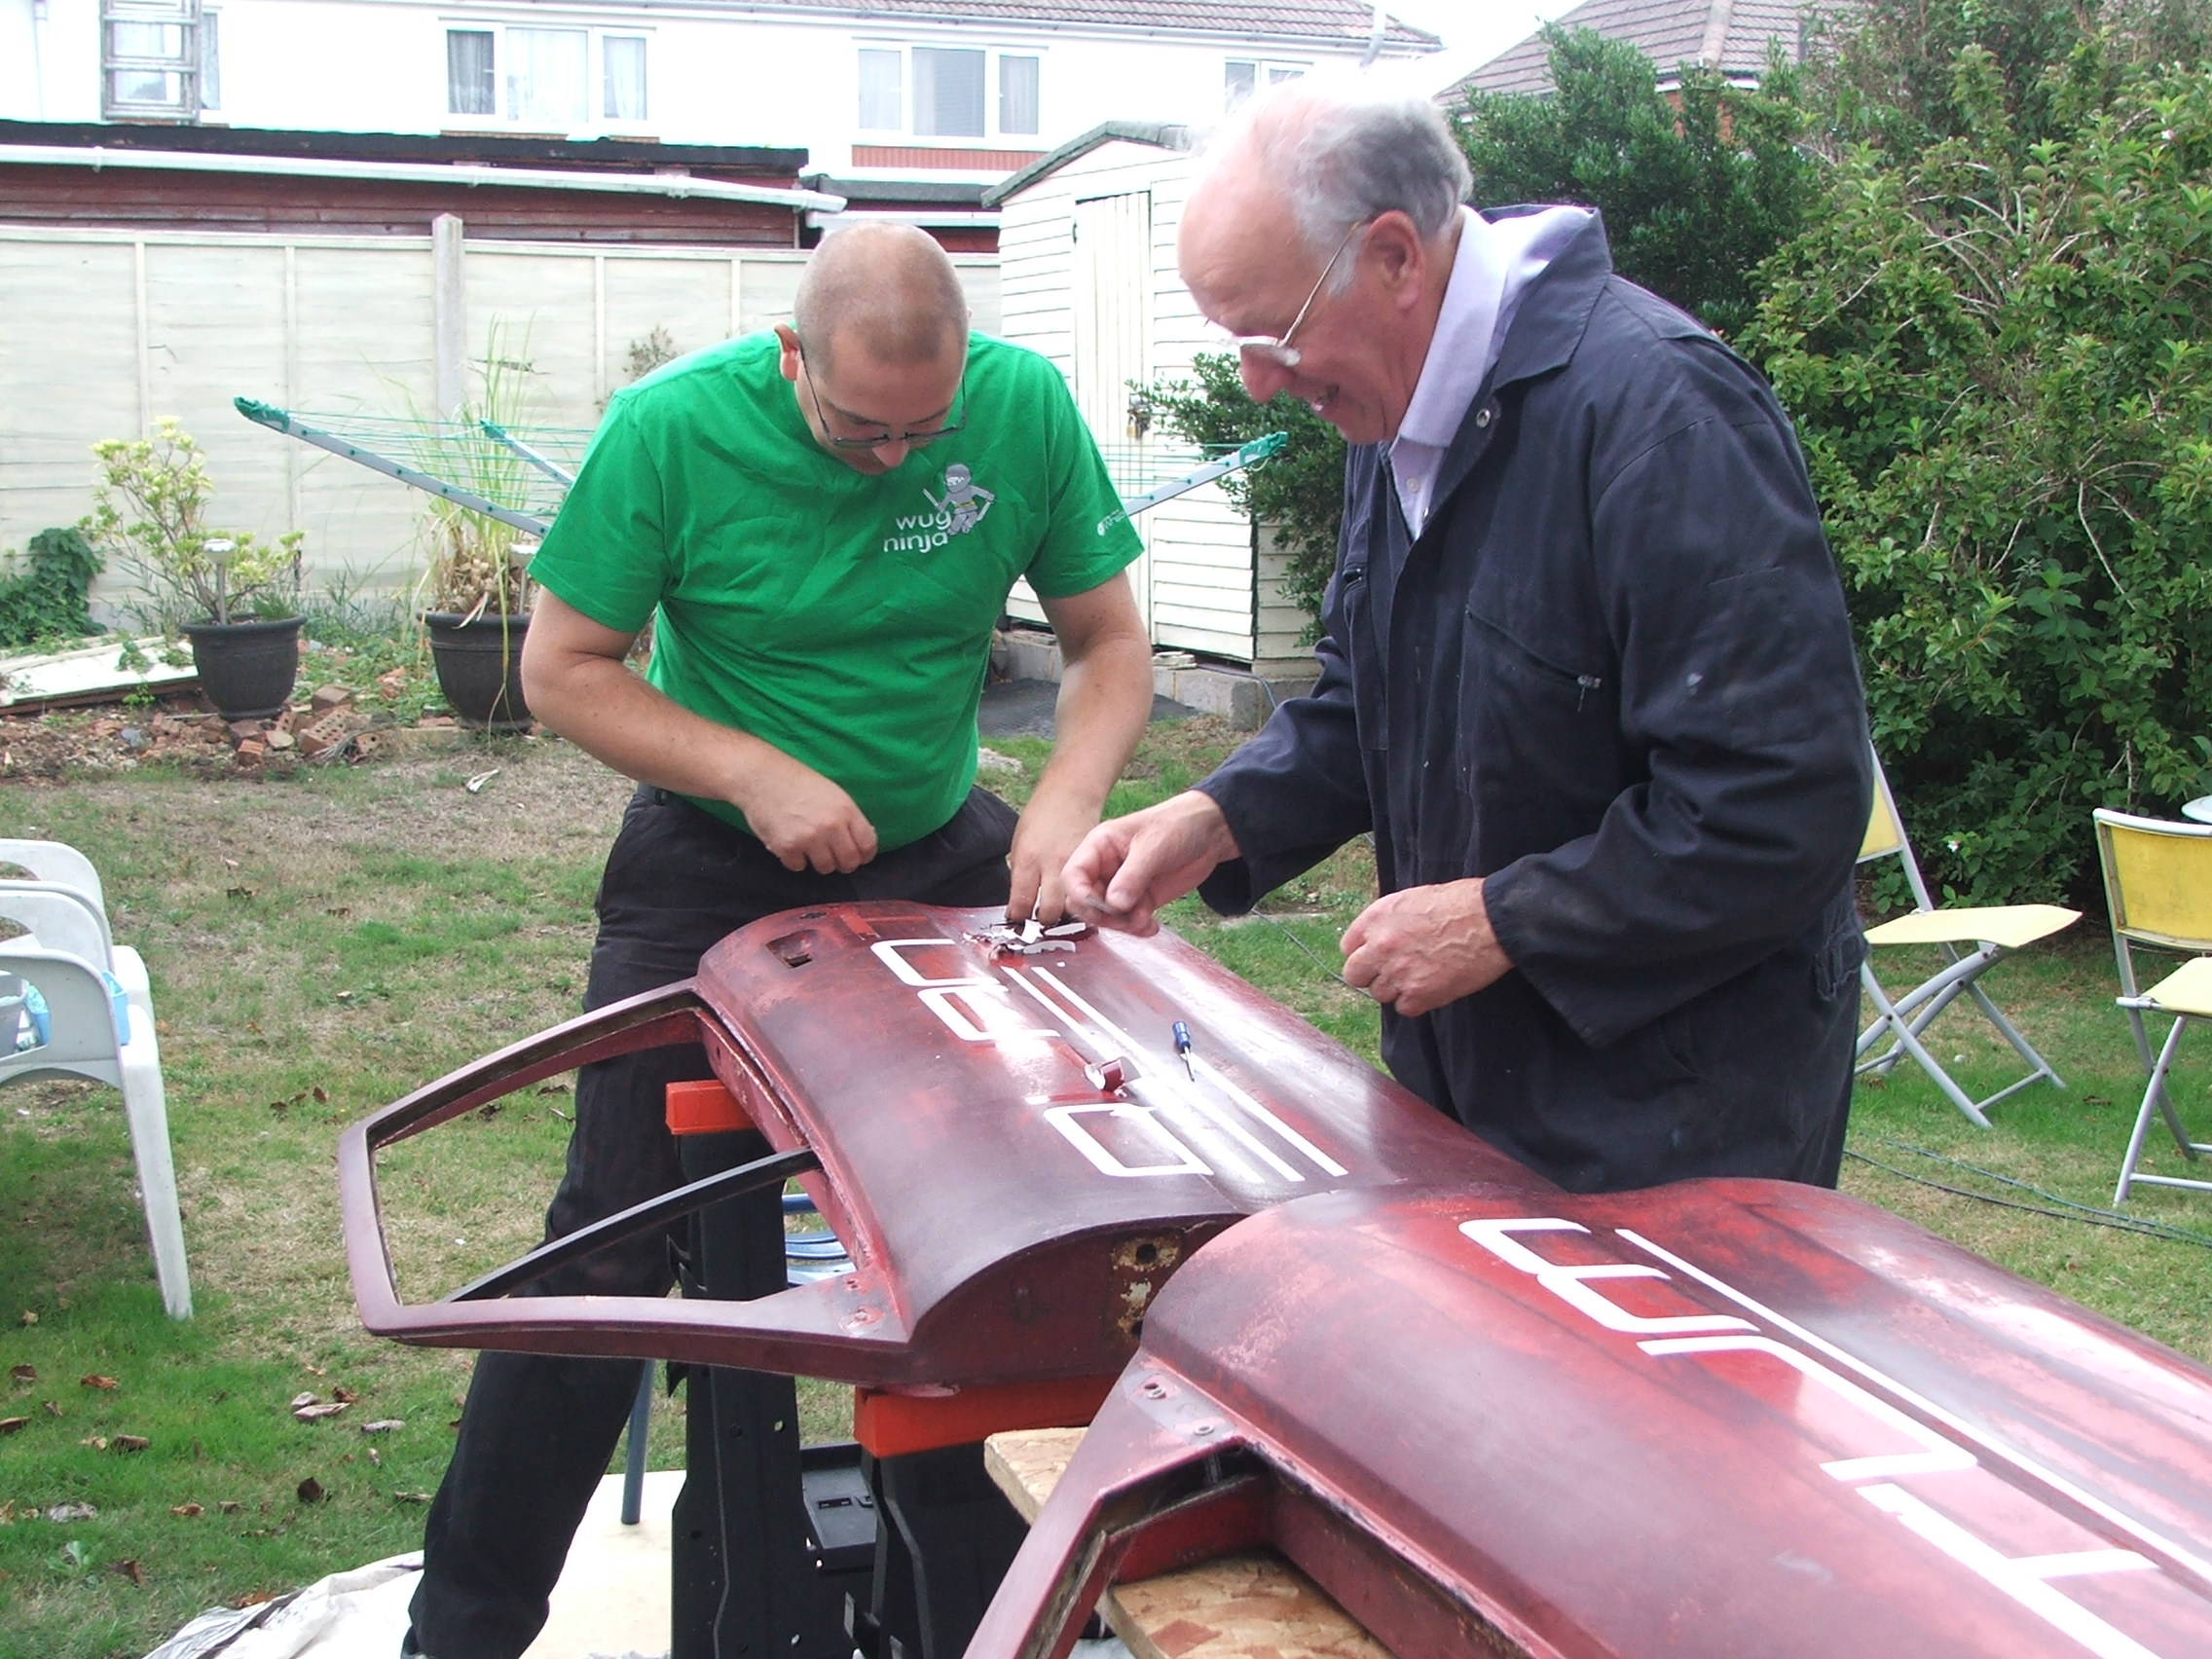 Steve Kodz and David Calderwood stripping the graphics off Quantum Coupé 003